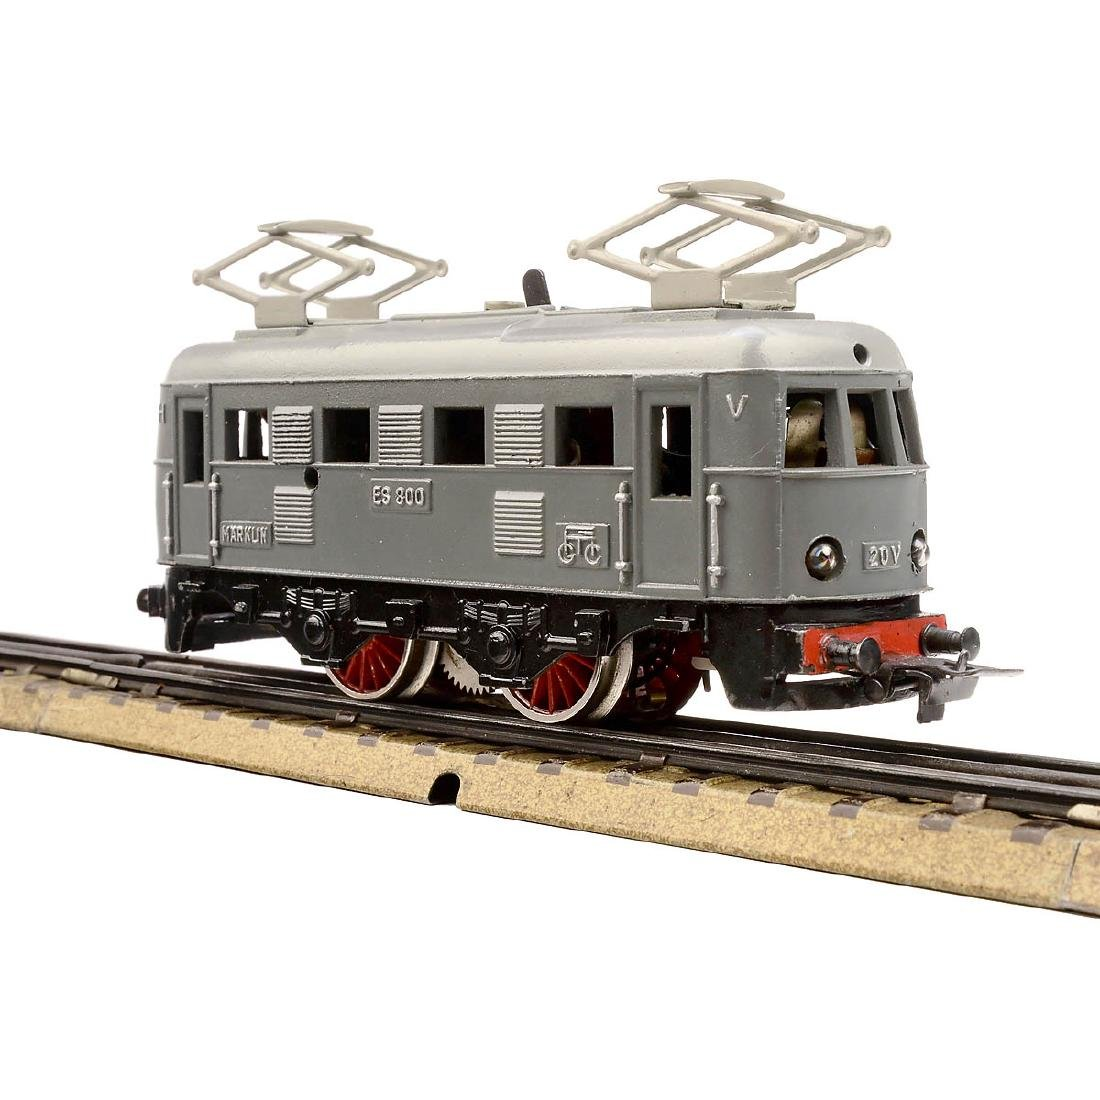 Märklin RS 790 Electric Locomotive, 1949